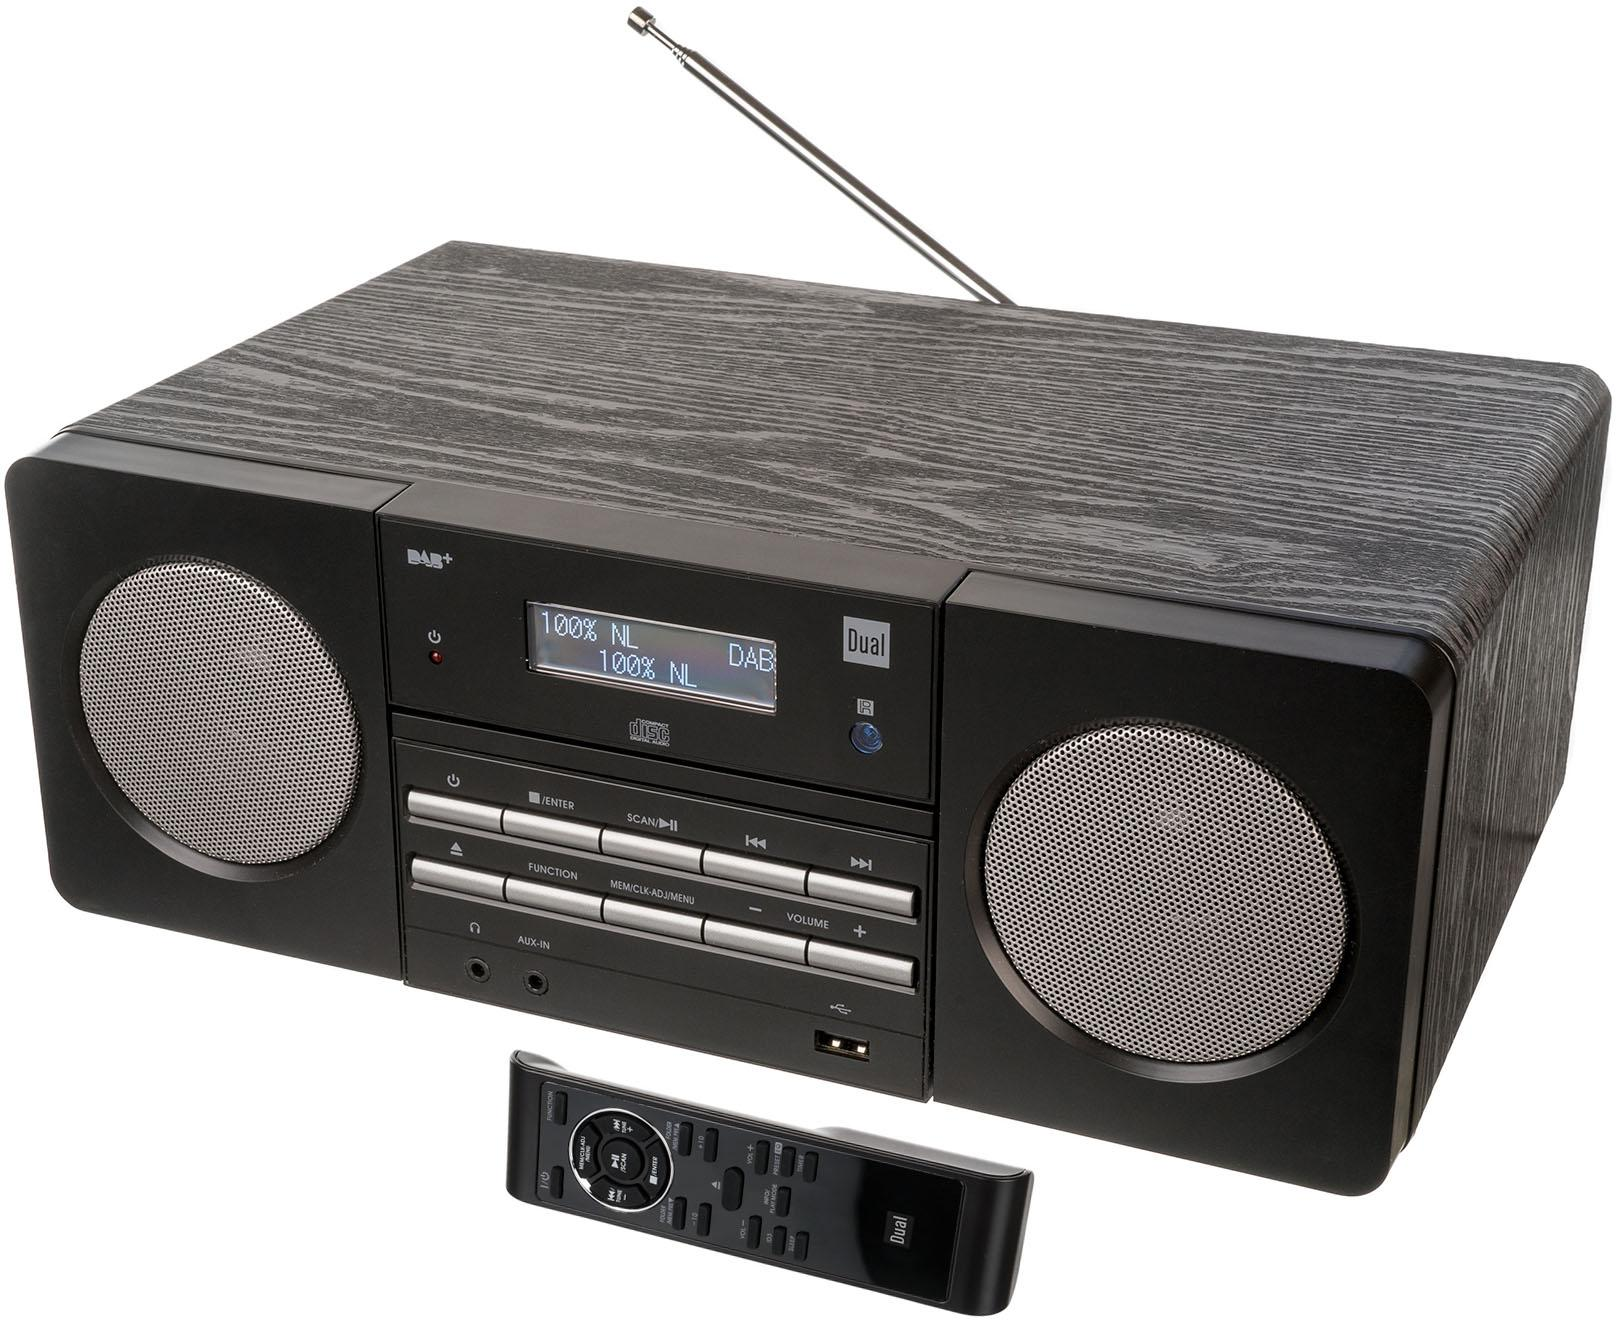 dual dab 410 microanlage digitalradio dab rds 1x usb baur. Black Bedroom Furniture Sets. Home Design Ideas